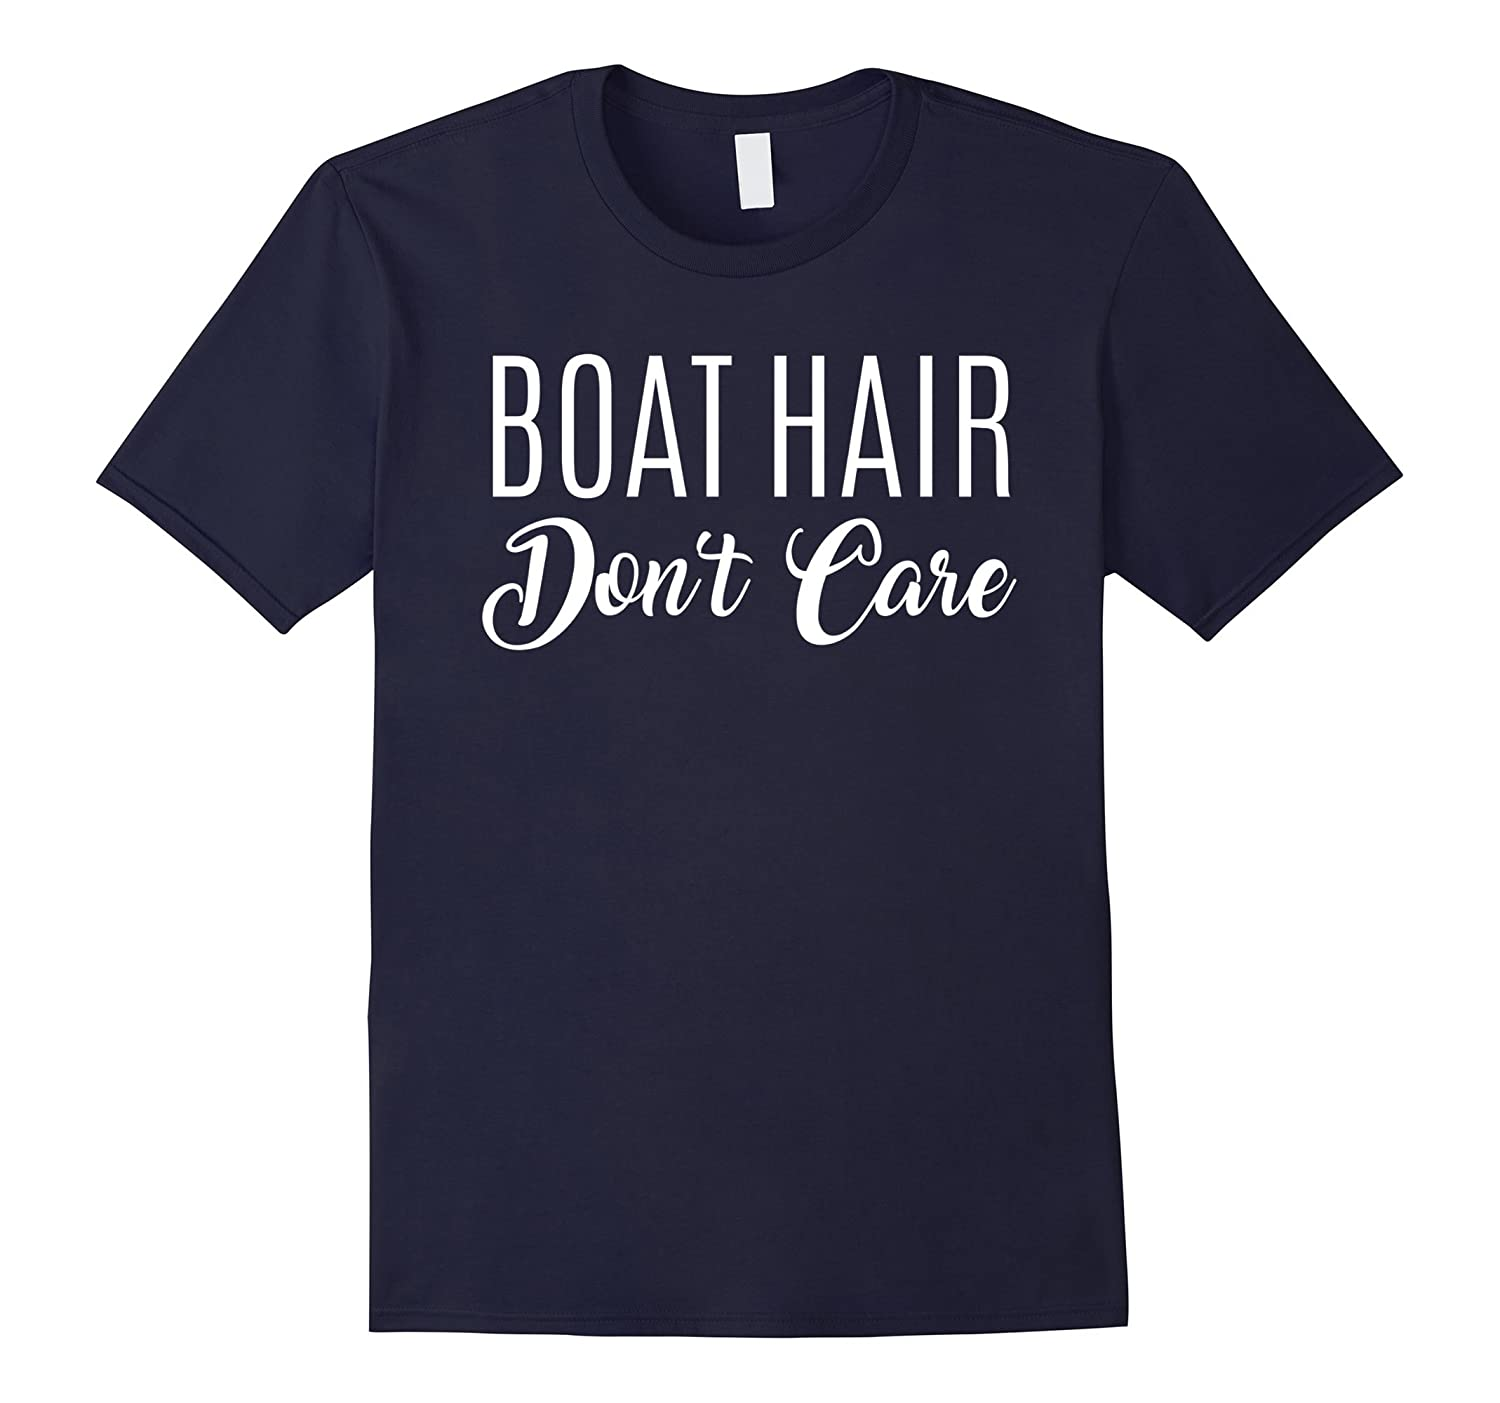 Boat Hair Don't Care Shirt, Funny Gift For Sailing-FL